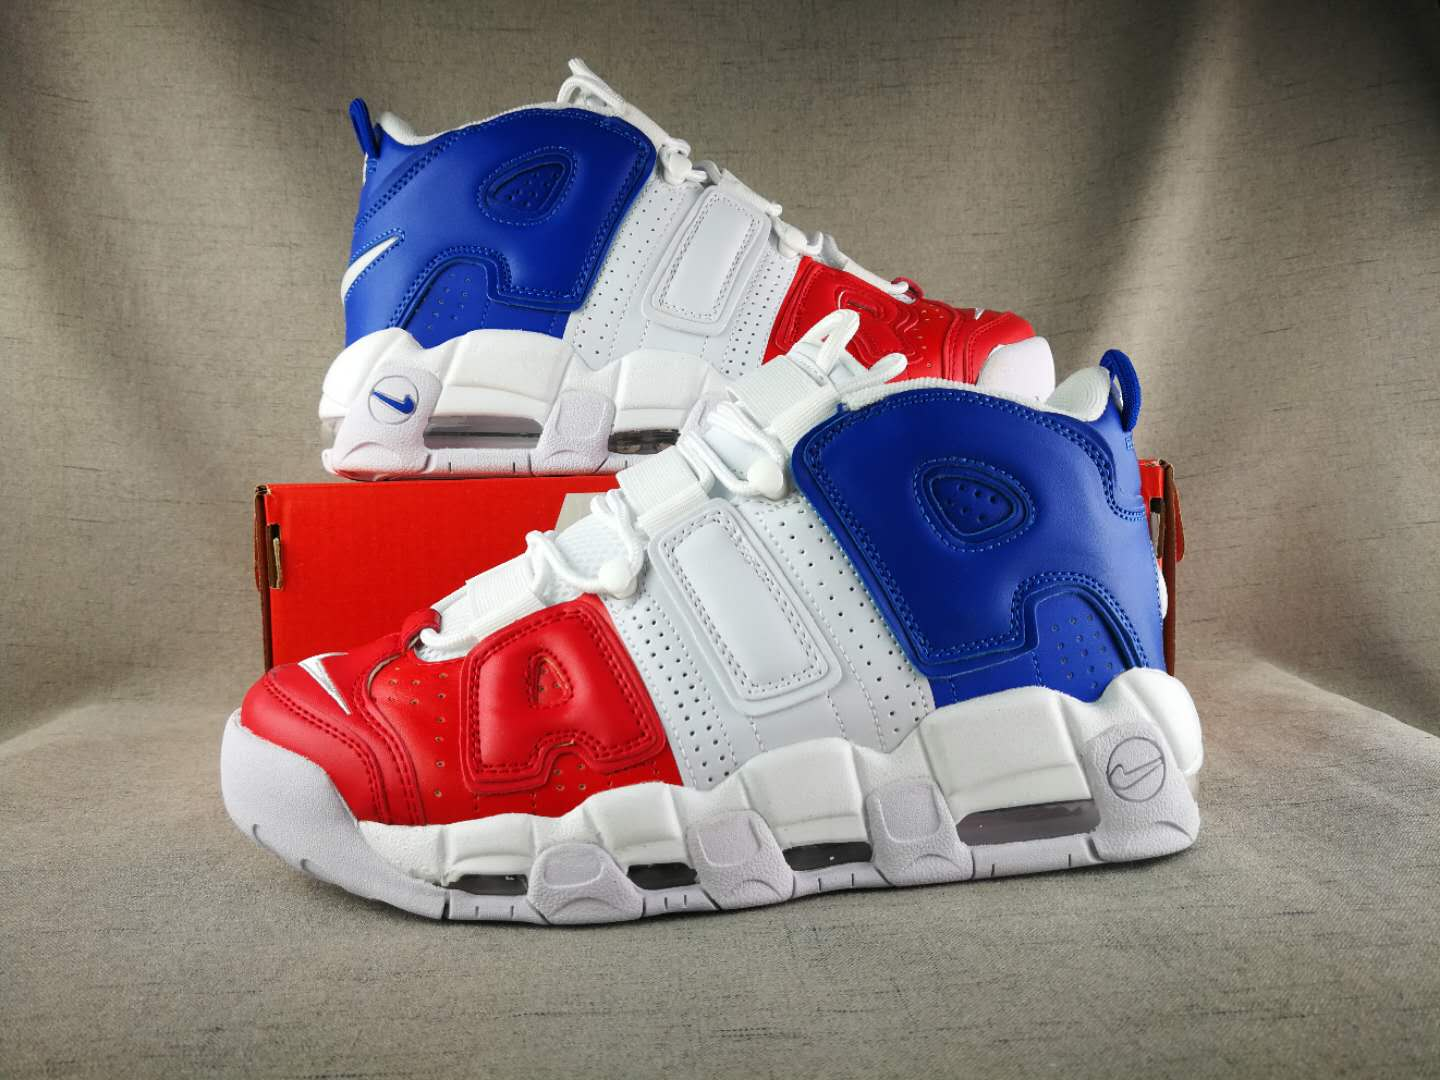 2018 Nike Air More Uptempo White Red Blue Shoes